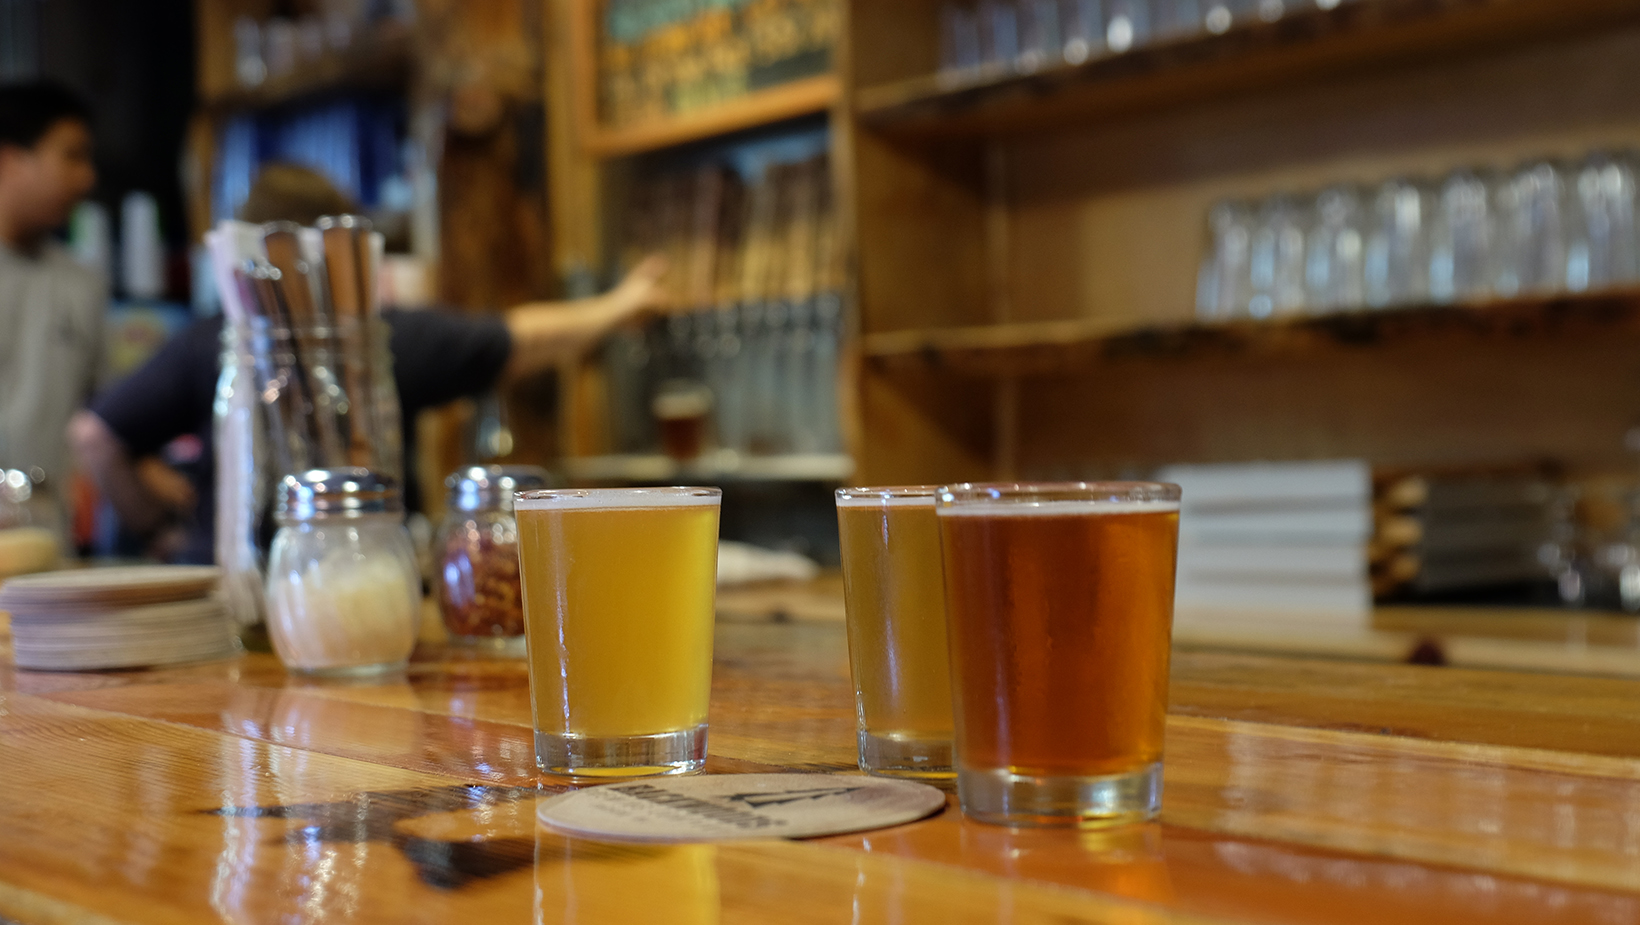 A natural wood bar with three craft beers and a bartender pouring taps at one of many tasty brew pubs in the Gorge